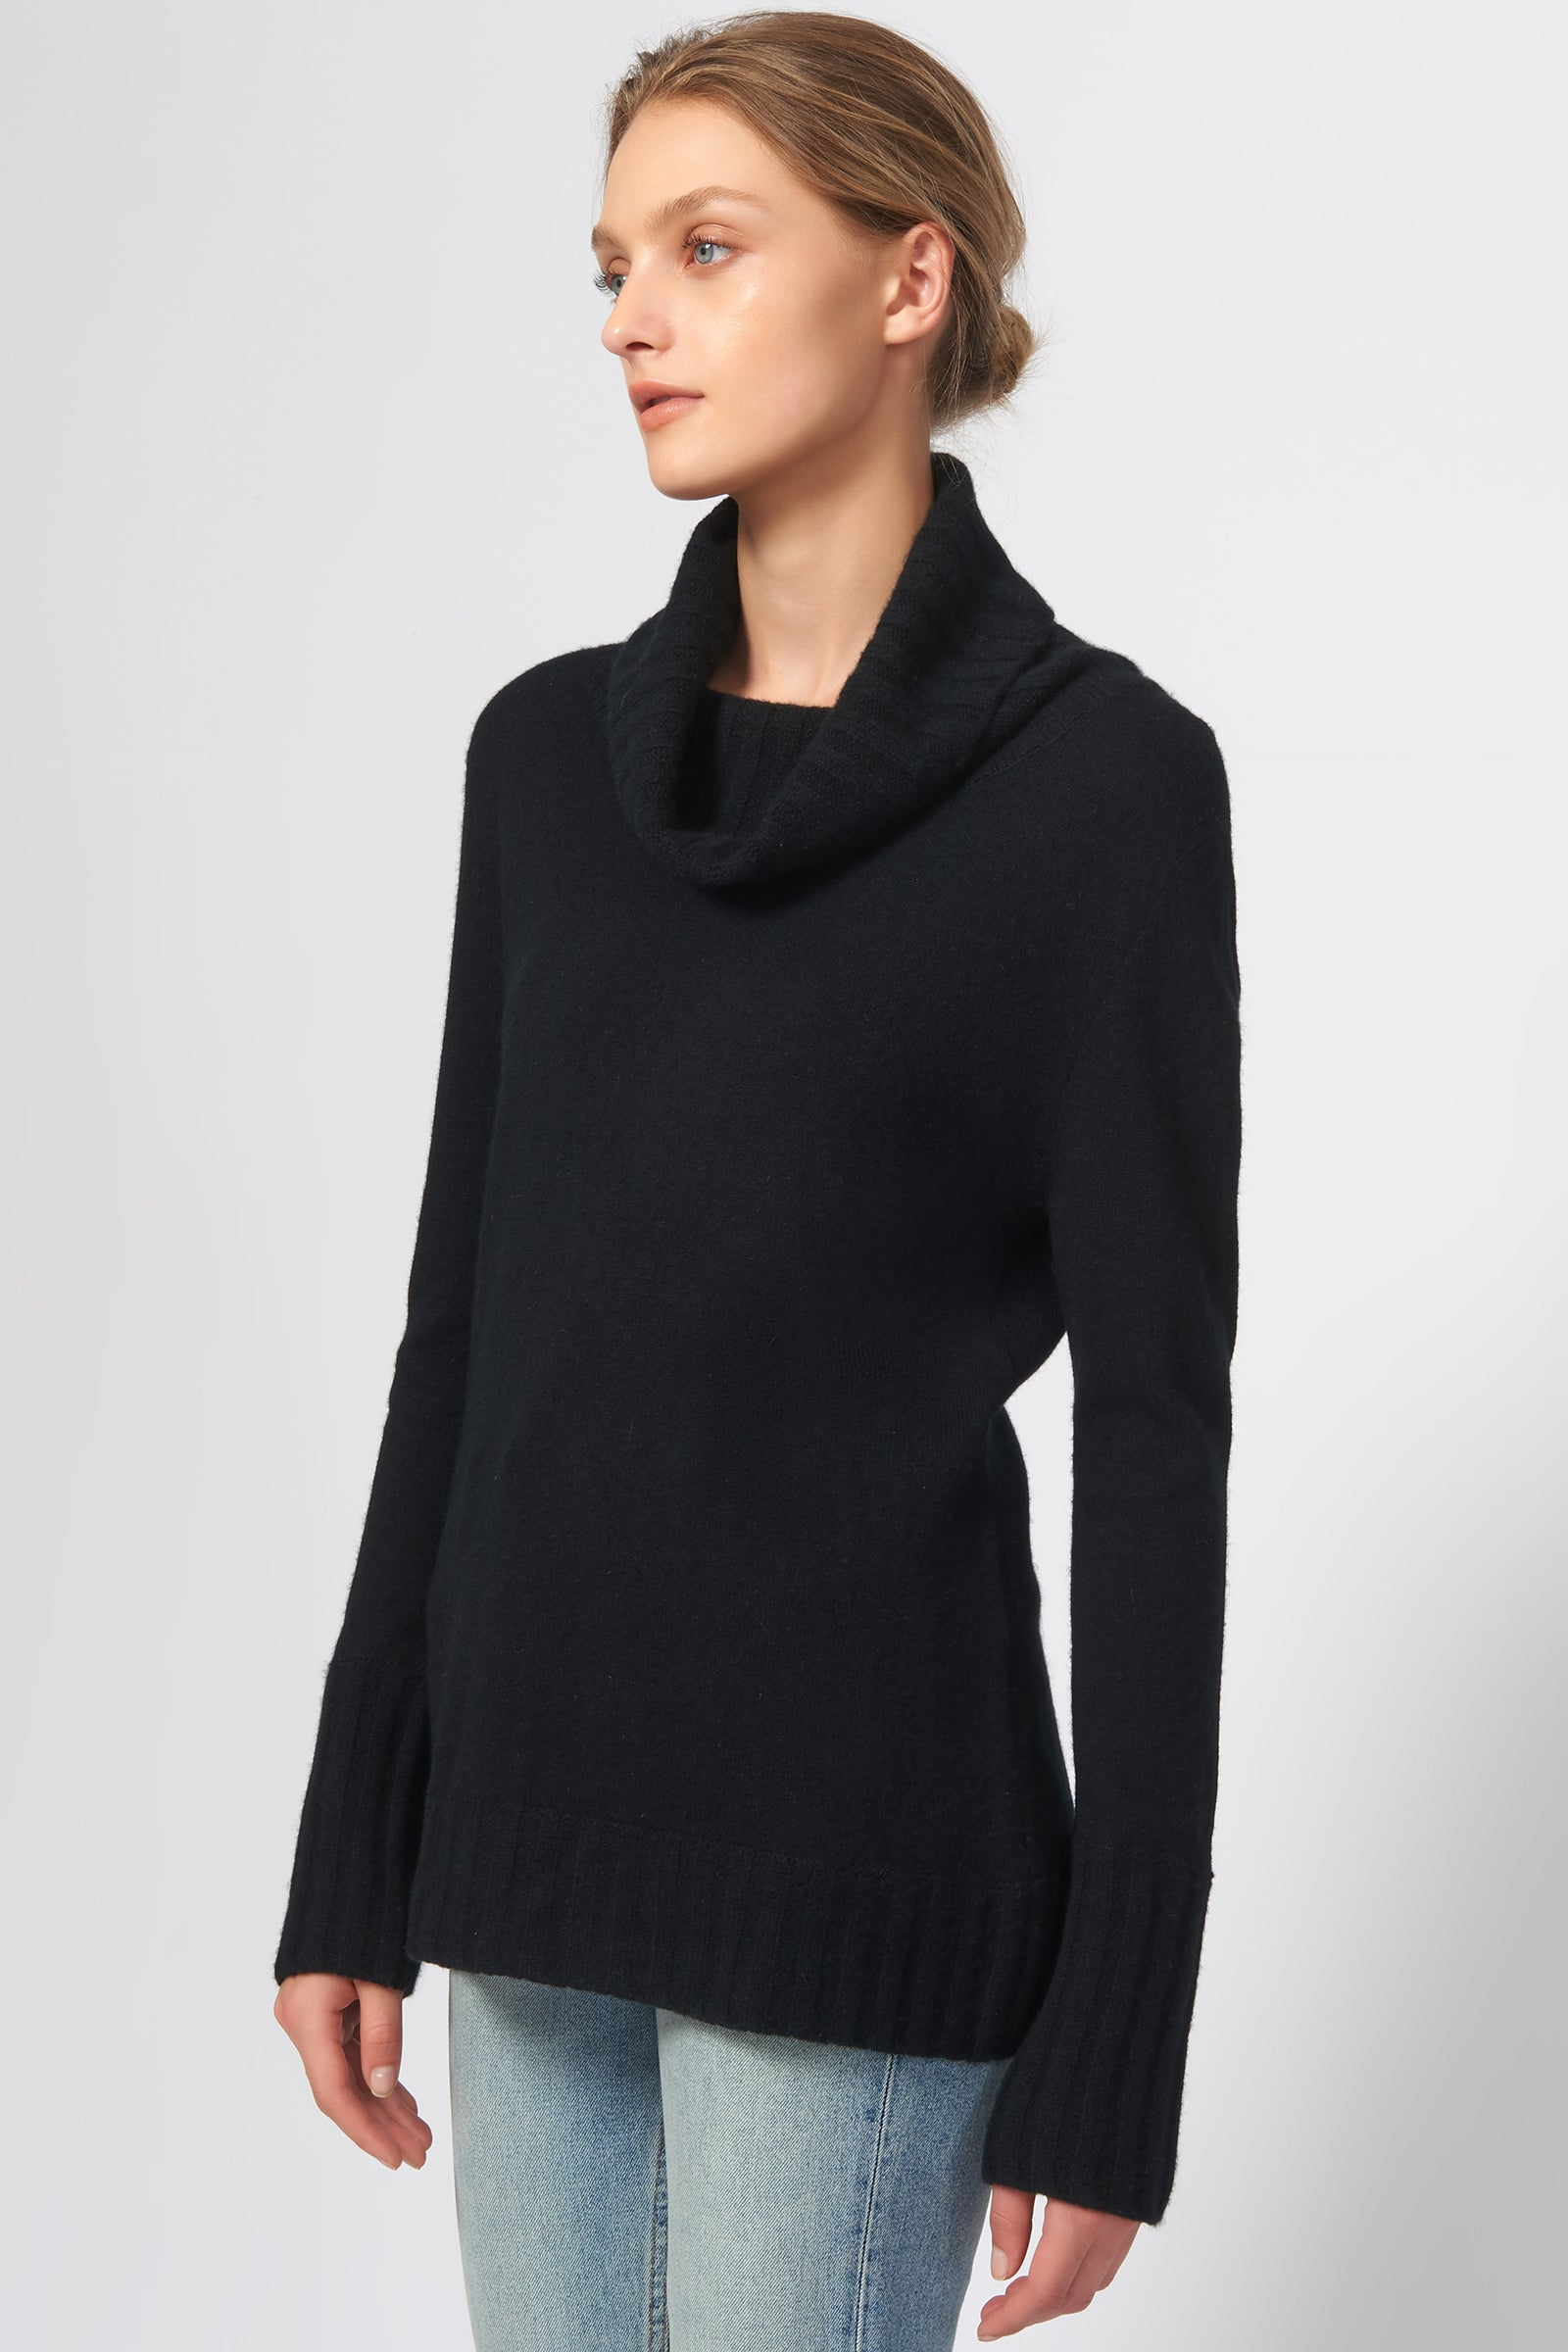 Kal Rieman Cashmere Cowel T-Neck in Black on Model Side View